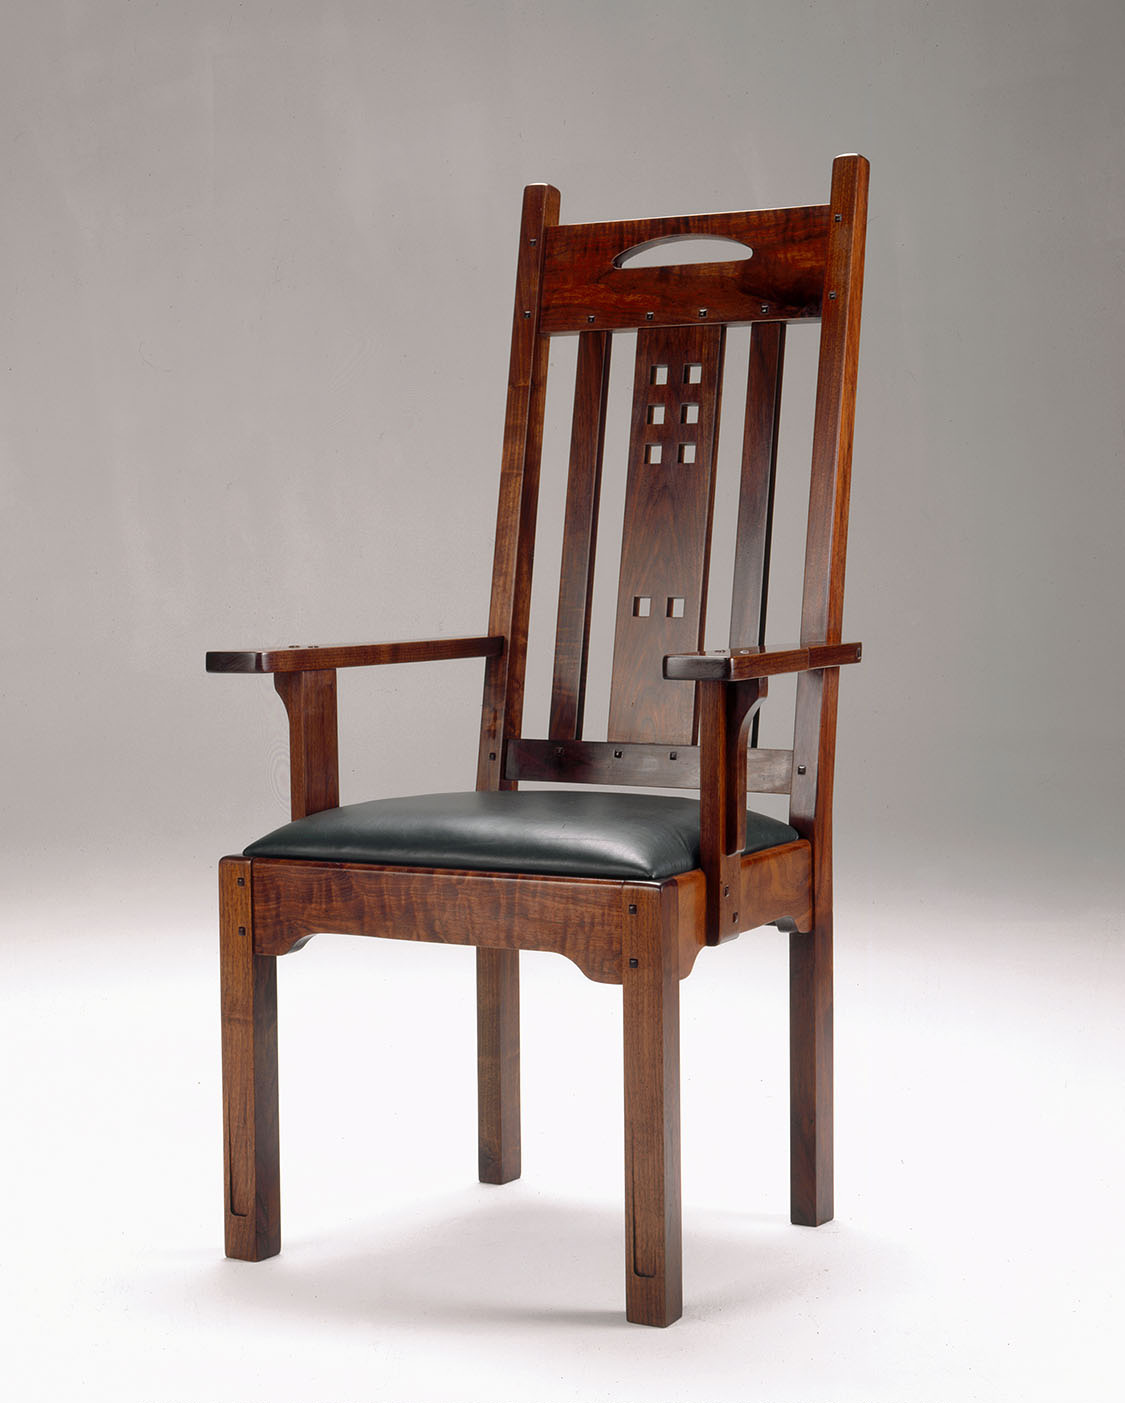 Best Kitchen Gallery: Lohr Arm Side Dining Chairs Lohr Woodworking Studio of Dining Chairs With Arms  on rachelxblog.com